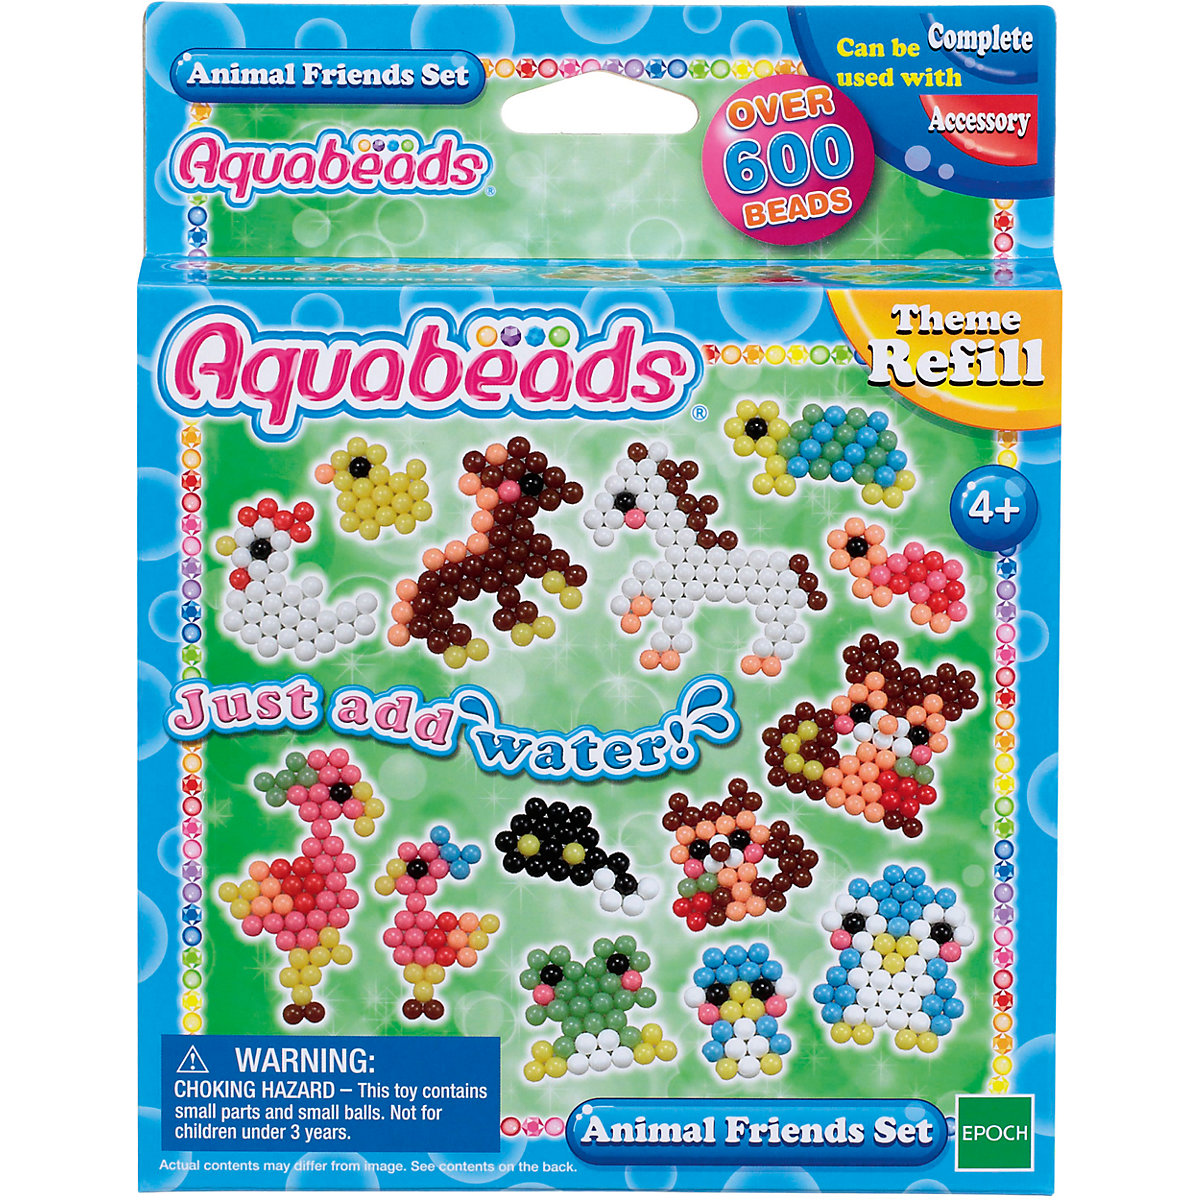 Aquabeads Beads Toys 7240121 Creativity Needlework For Children Set Kids Toy Hobbis Arts Crafts DIY